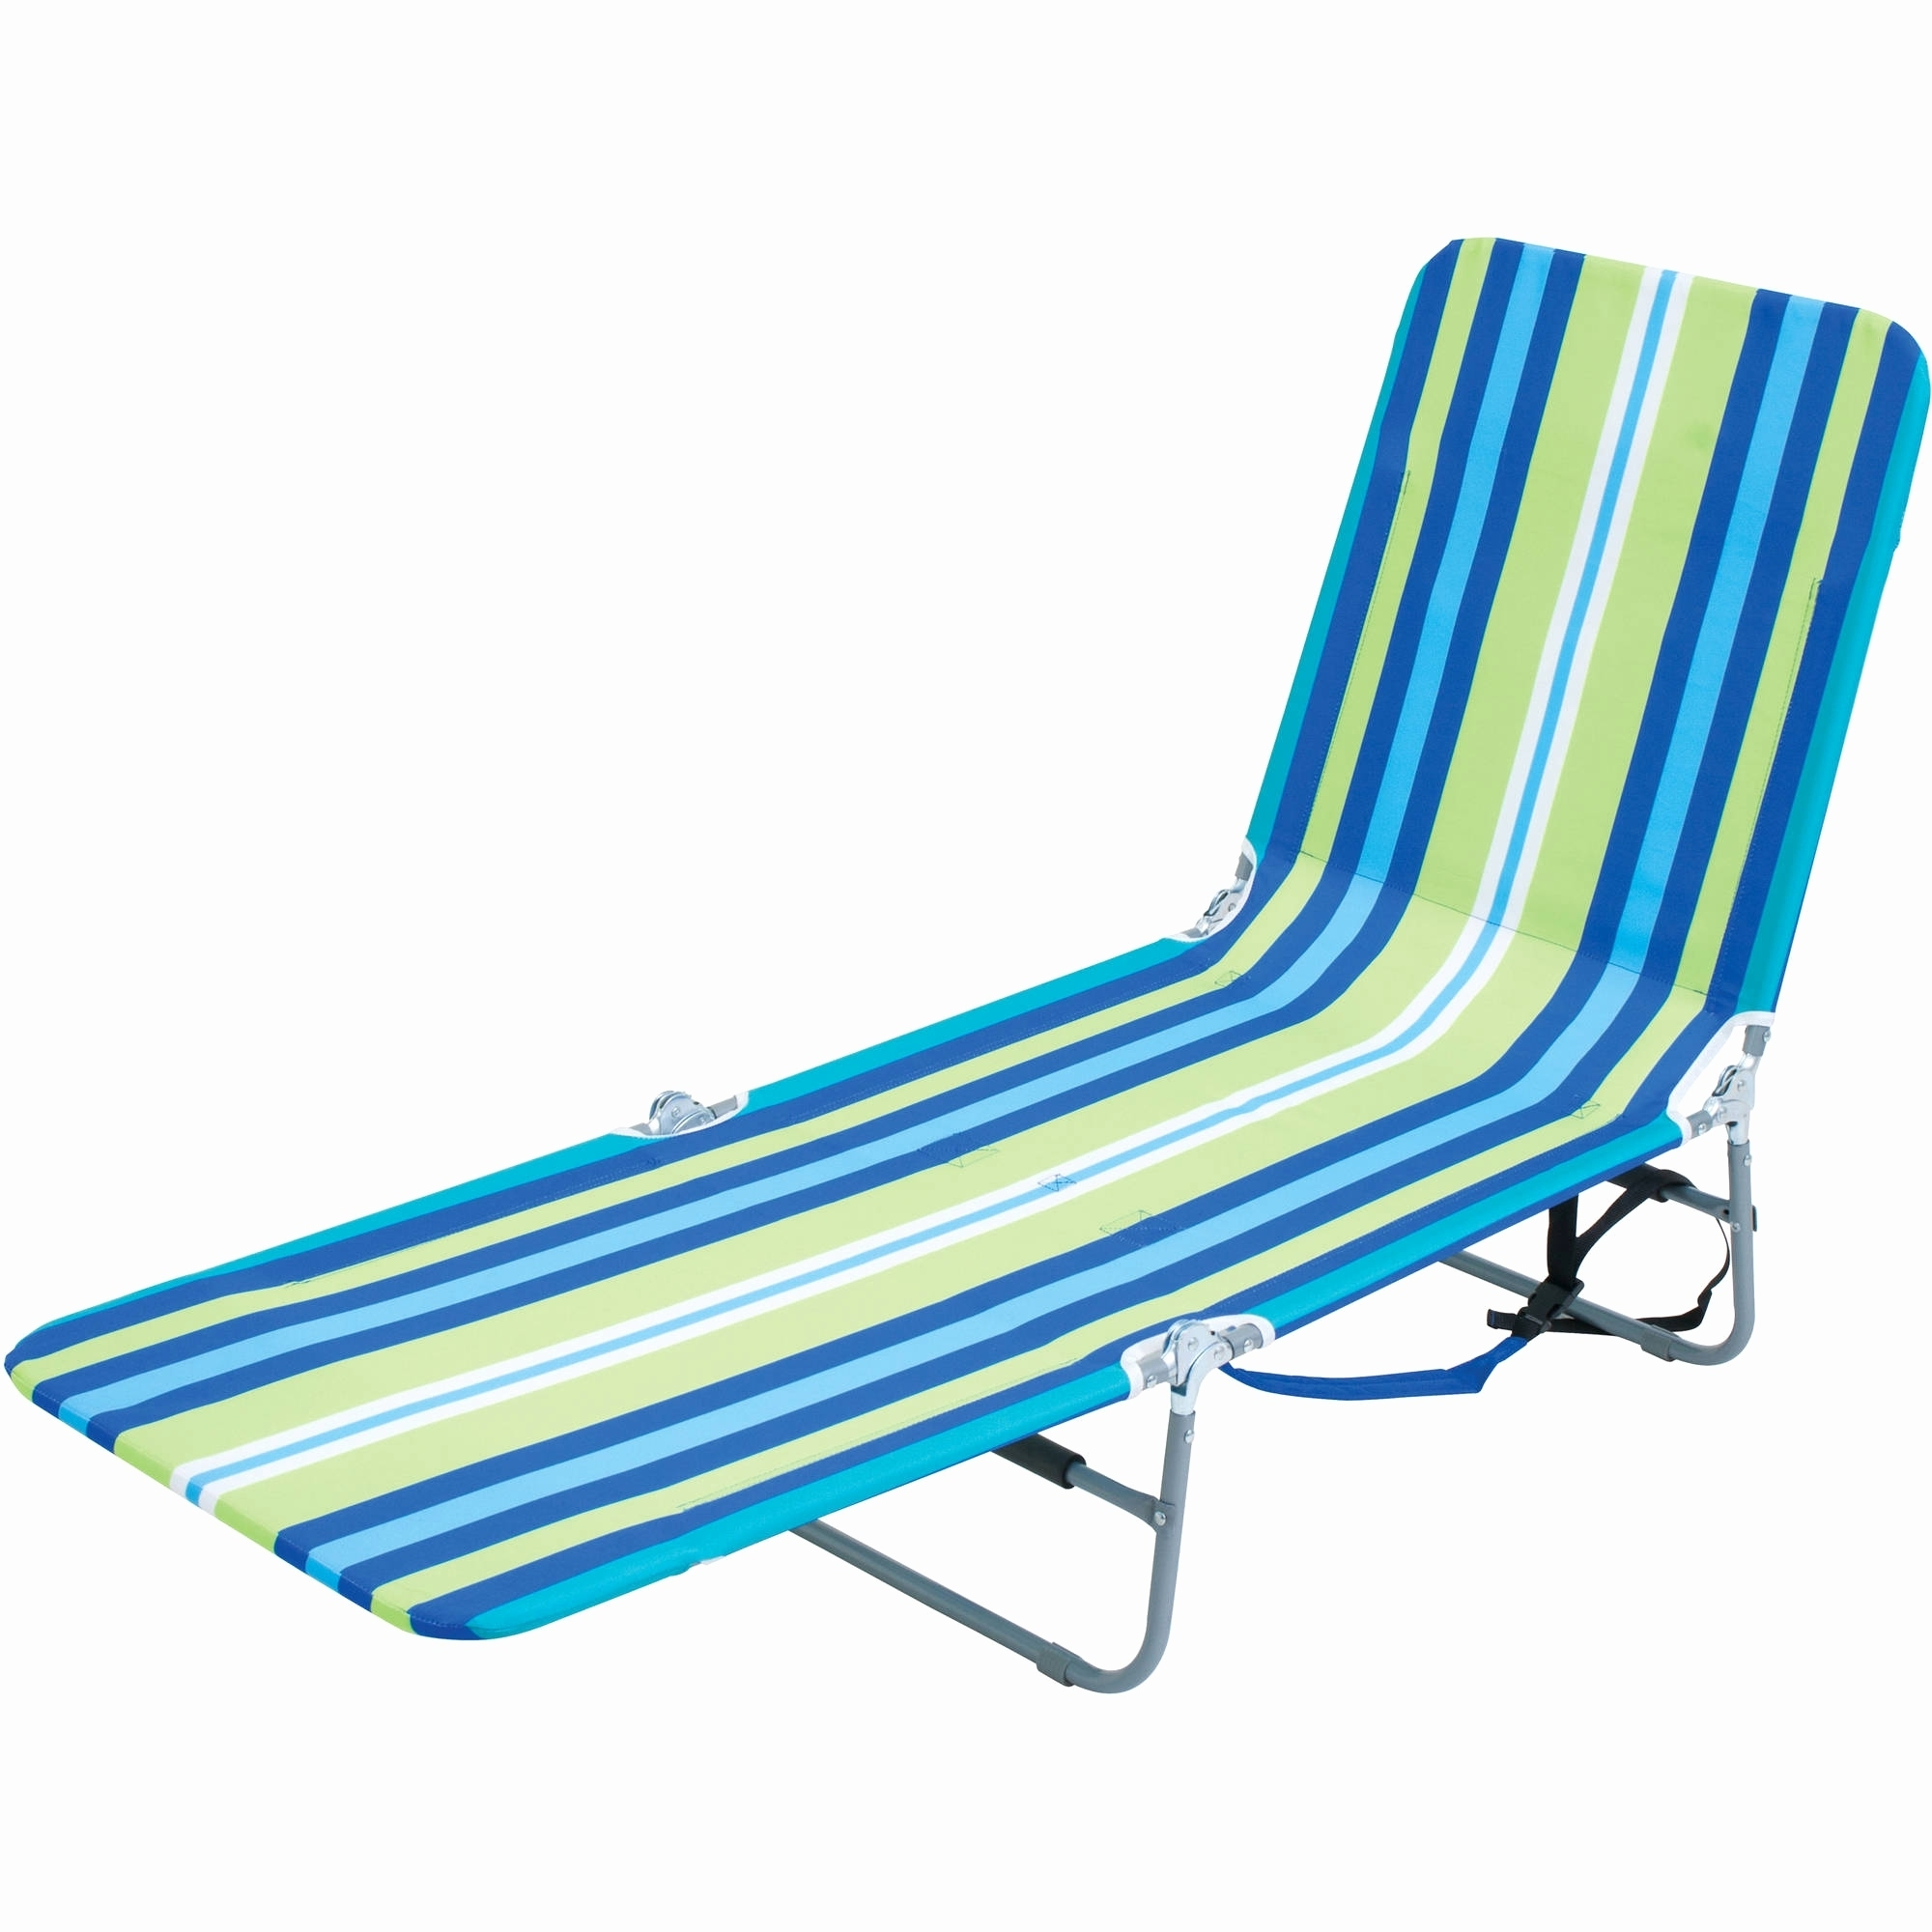 Outdoor Chaise Lounge Chairs At Walmart Regarding Current Picture 10 Of 30 – Outdoor Lounge Chairs Walmart Inspirational (View 14 of 15)